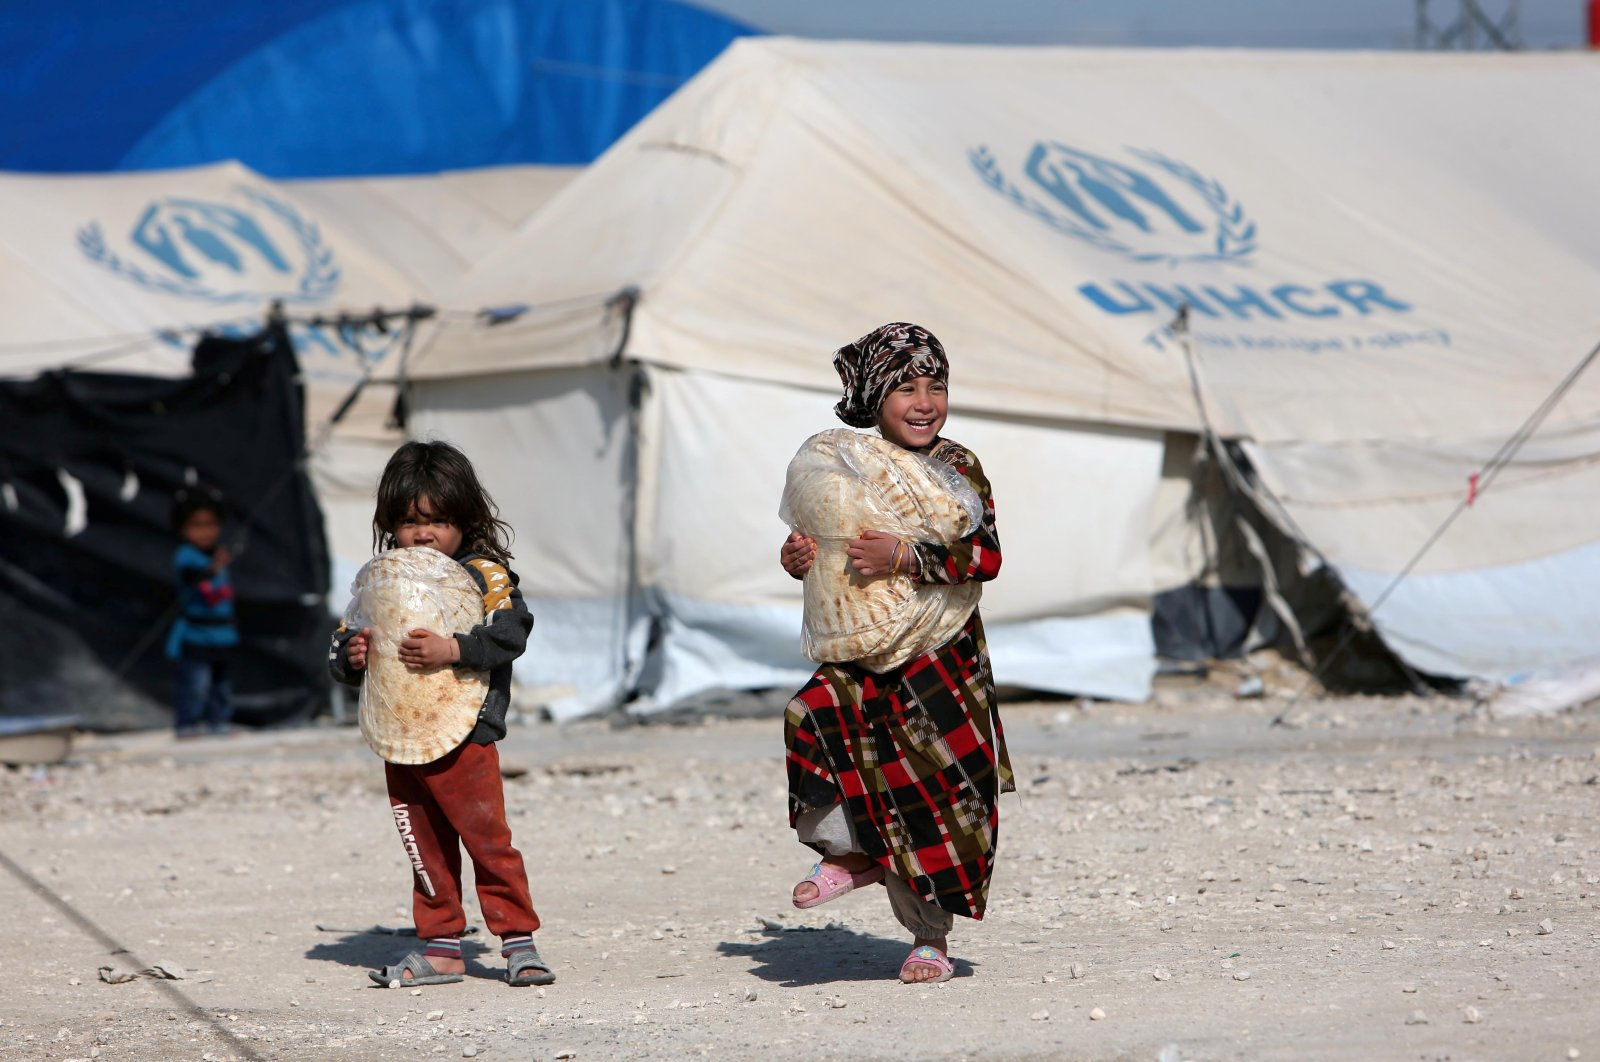 Children holding stacks of bread walk in an al-Hol displacement camp in Hassakeh governorate, Syria, April 2, 2019. (Reuters Photo)